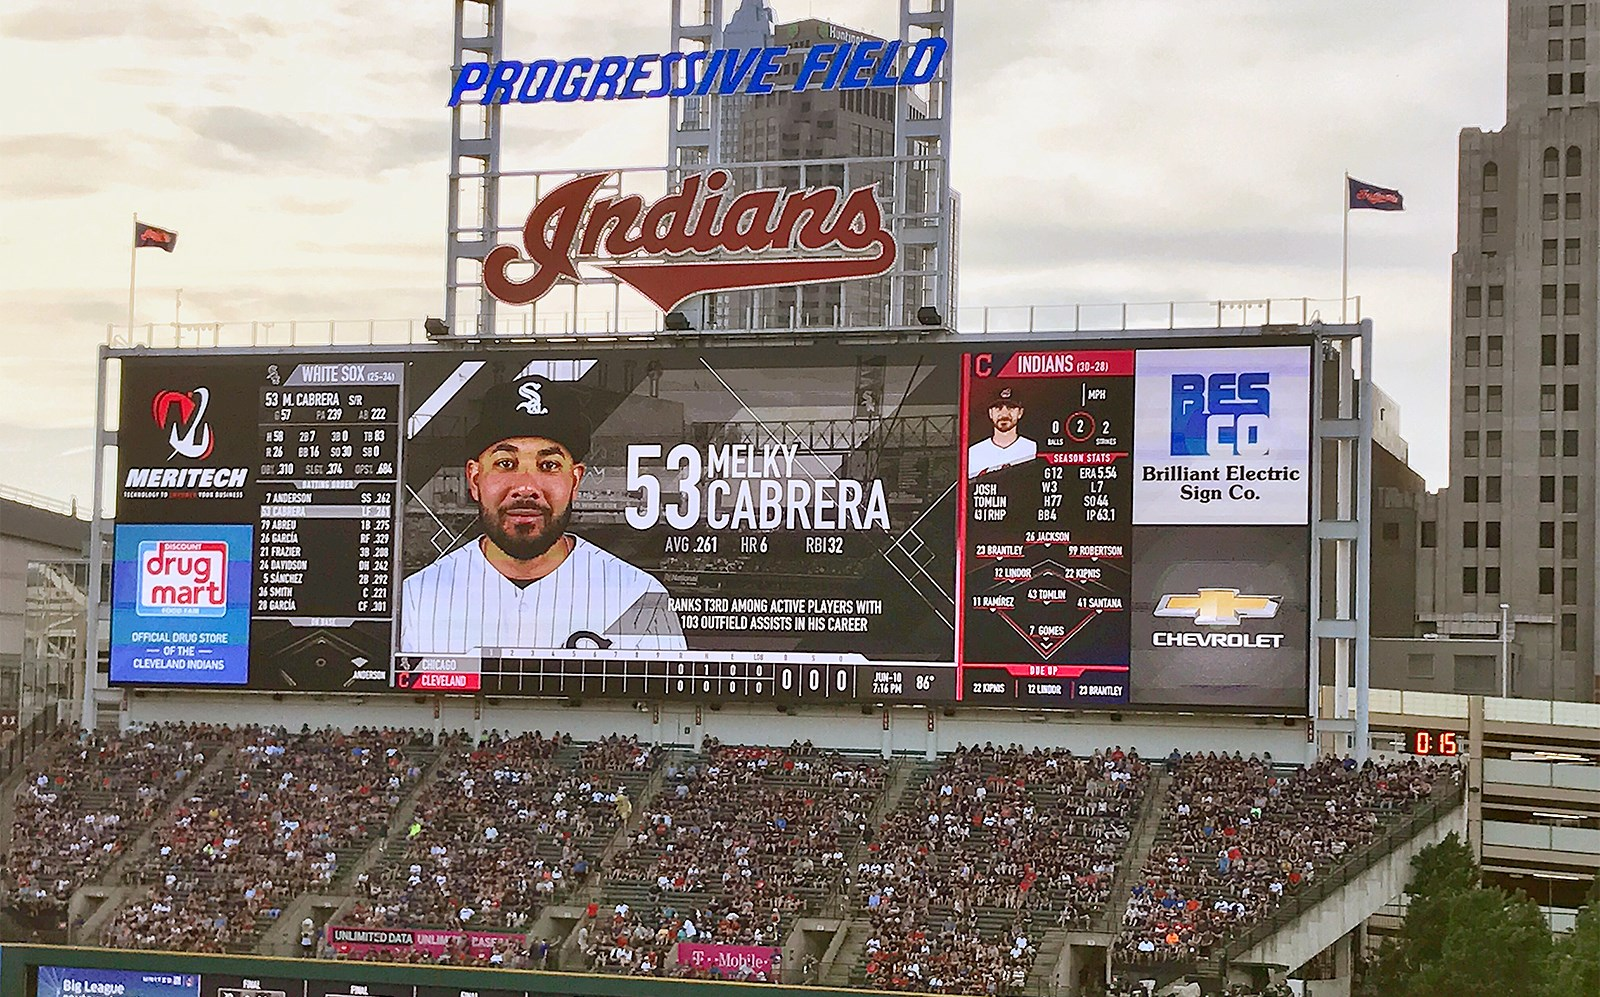 Brilliant Electric Sign Co Products Services Project Profiles About Us Contact Sports Facility Progressive Field Scoreboard Jpg